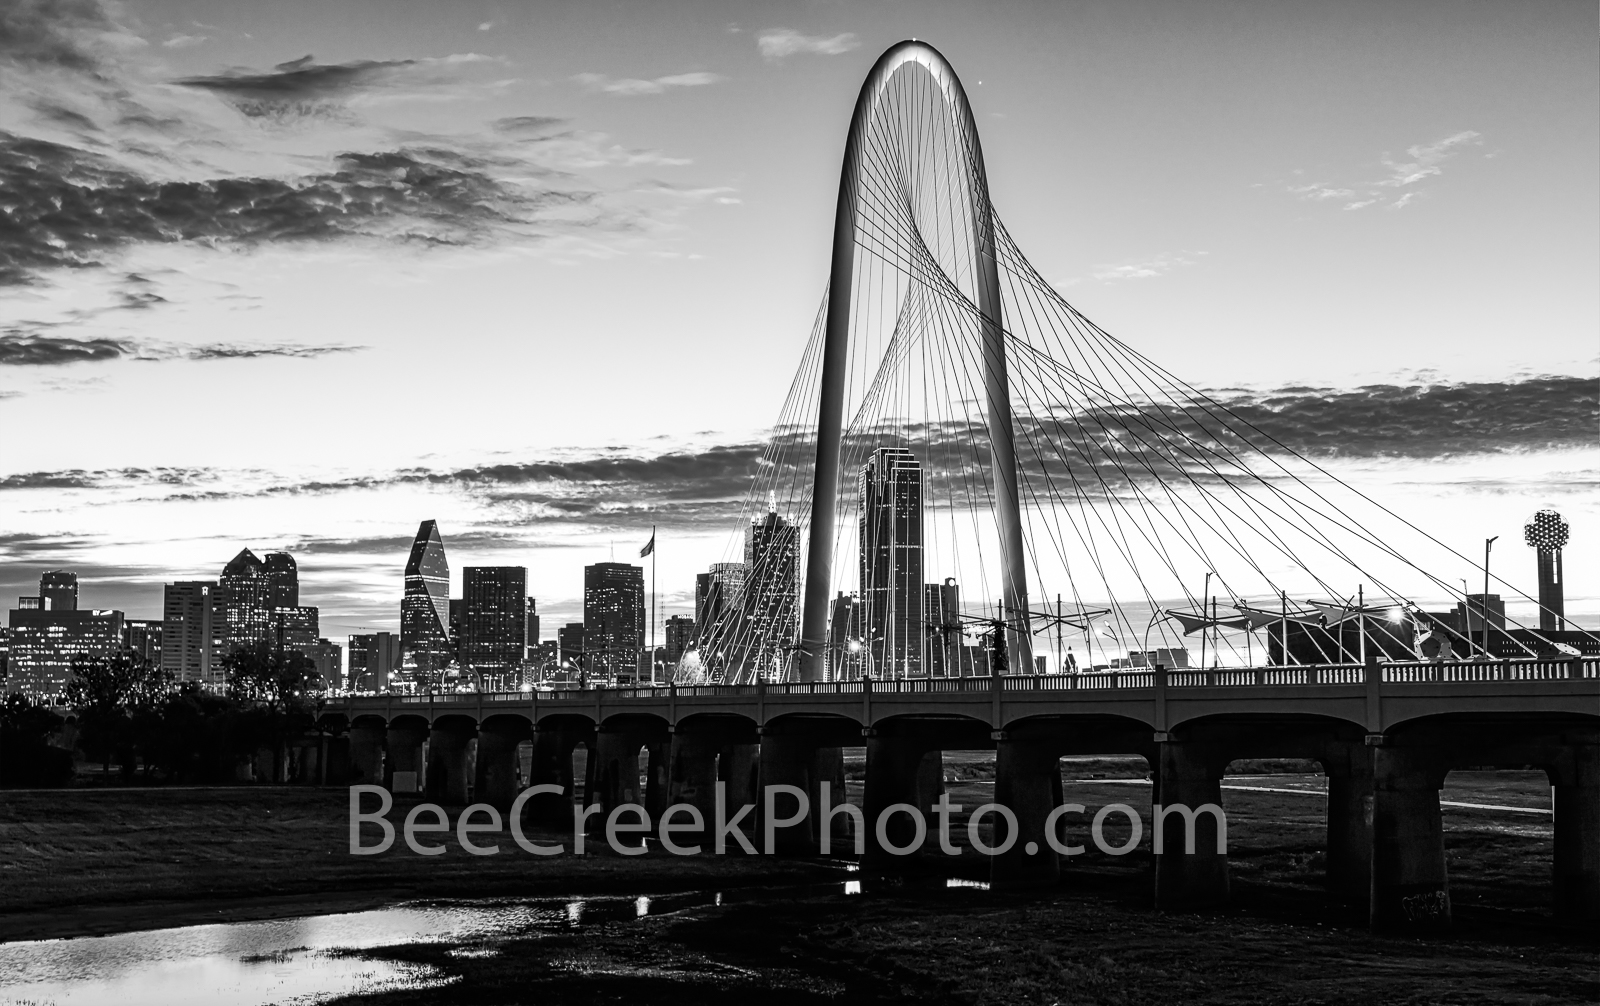 Dallas, black and white, BW, sunrise, Margaret Hunt Hill Bridge, Dallas skyline, Dallas bw, landmark, iconic, bridge, downtown dallas, city,  dallastx,  city of dallas, dallas texas, , photo